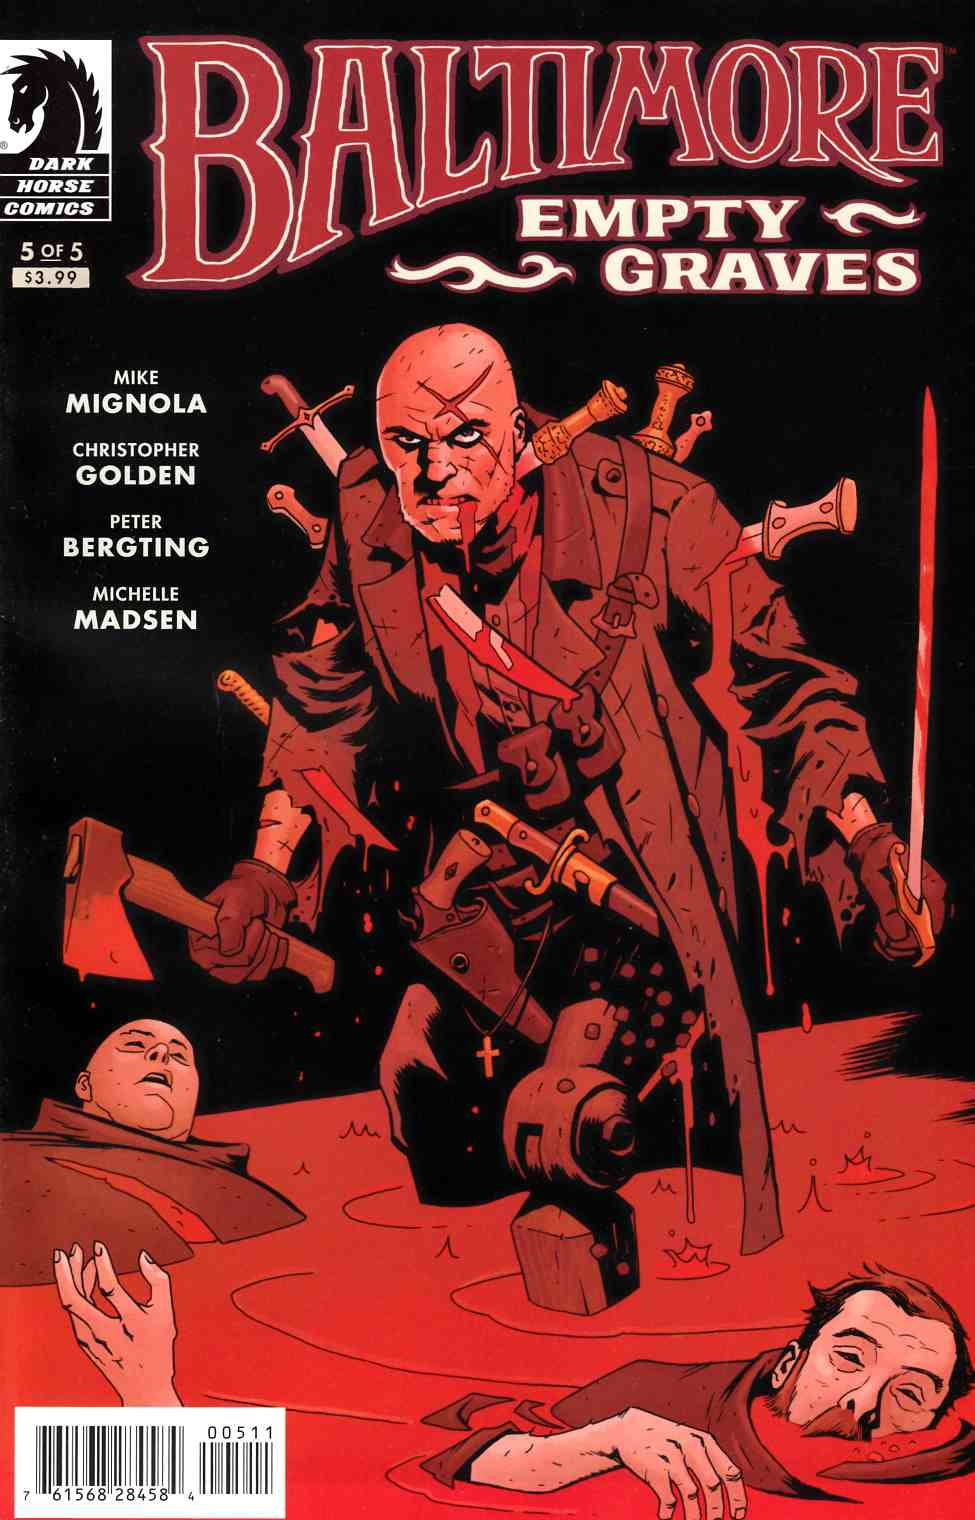 Baltimore Empty Graves #5 [Dark Horse Comic] THUMBNAIL